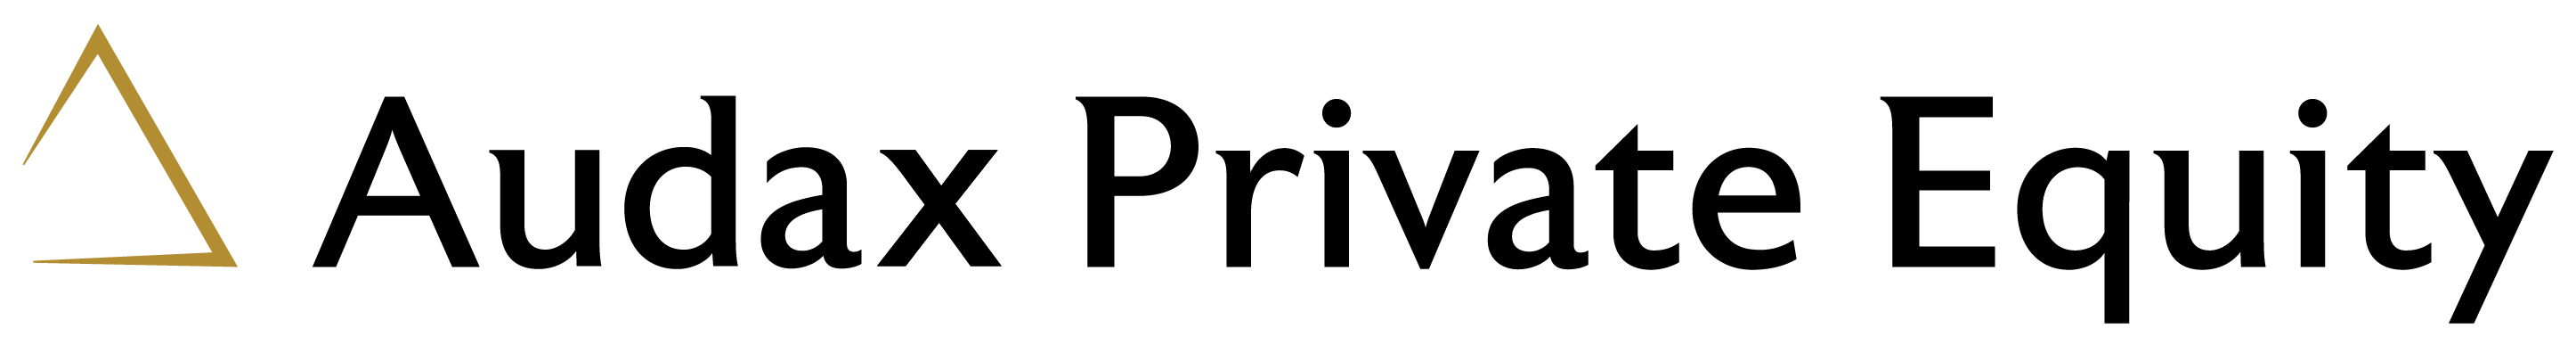 Audax Private Equity Logo